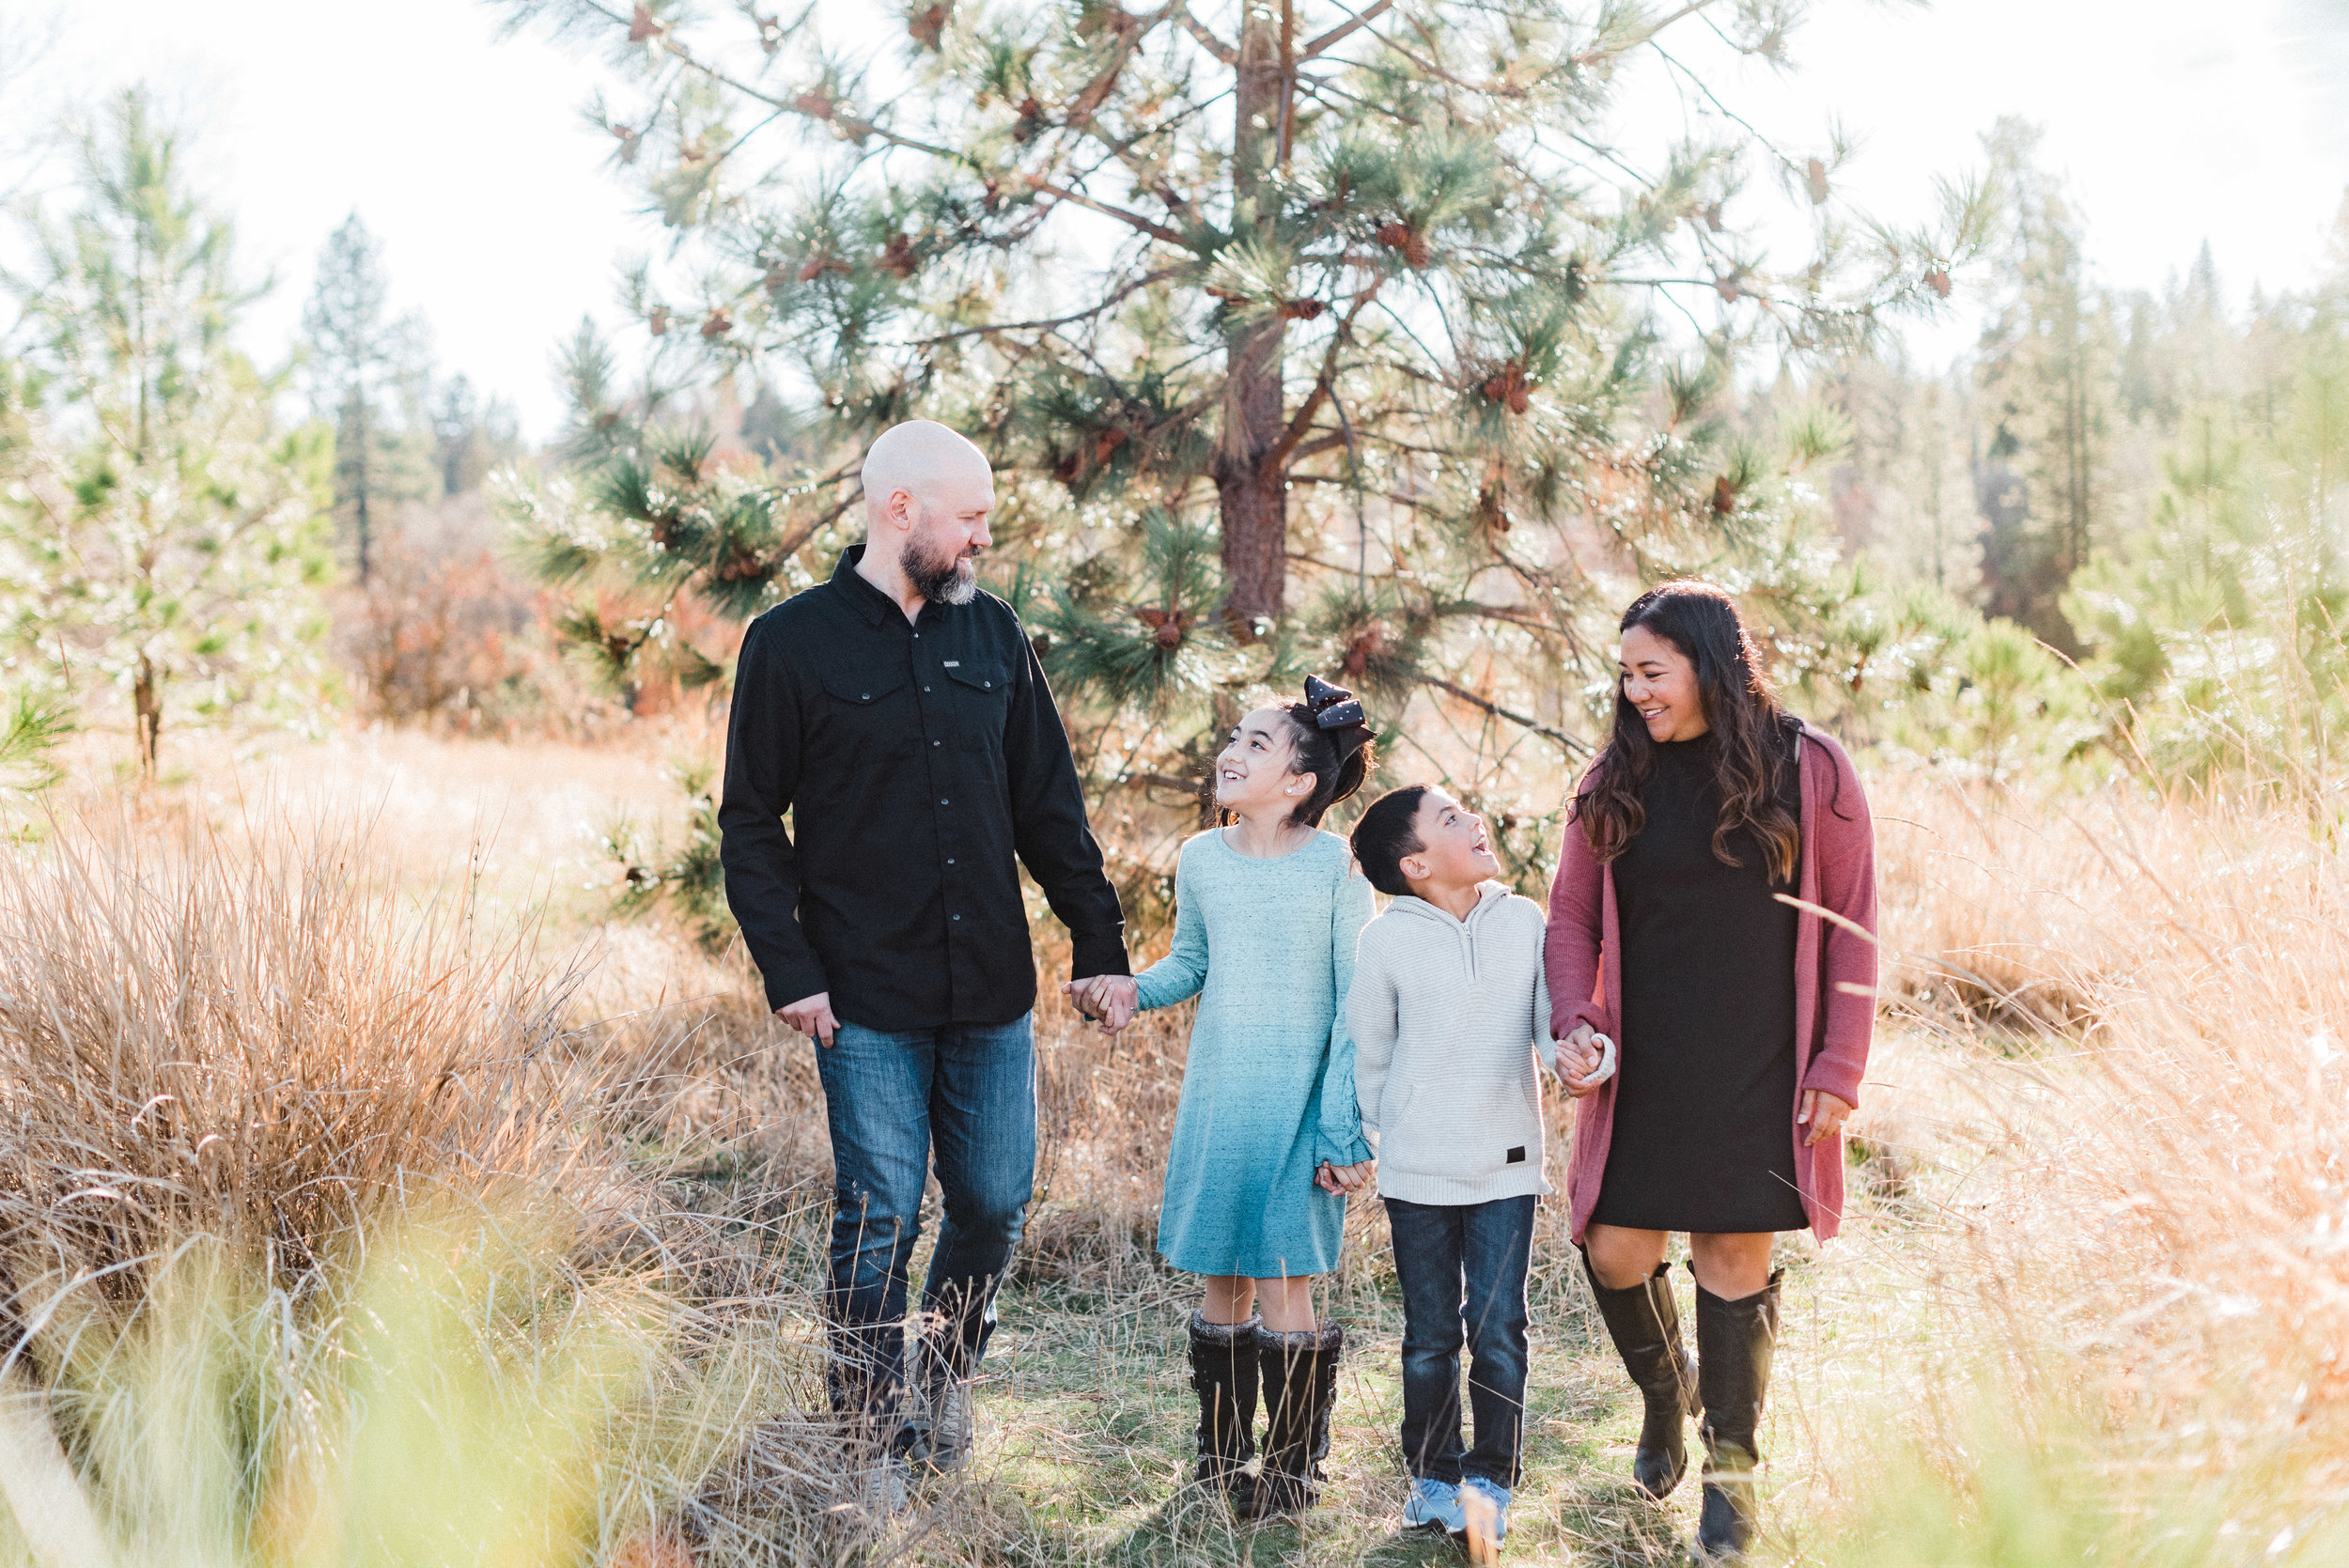 spokane-family-session-solberg (27 of 30).jpg